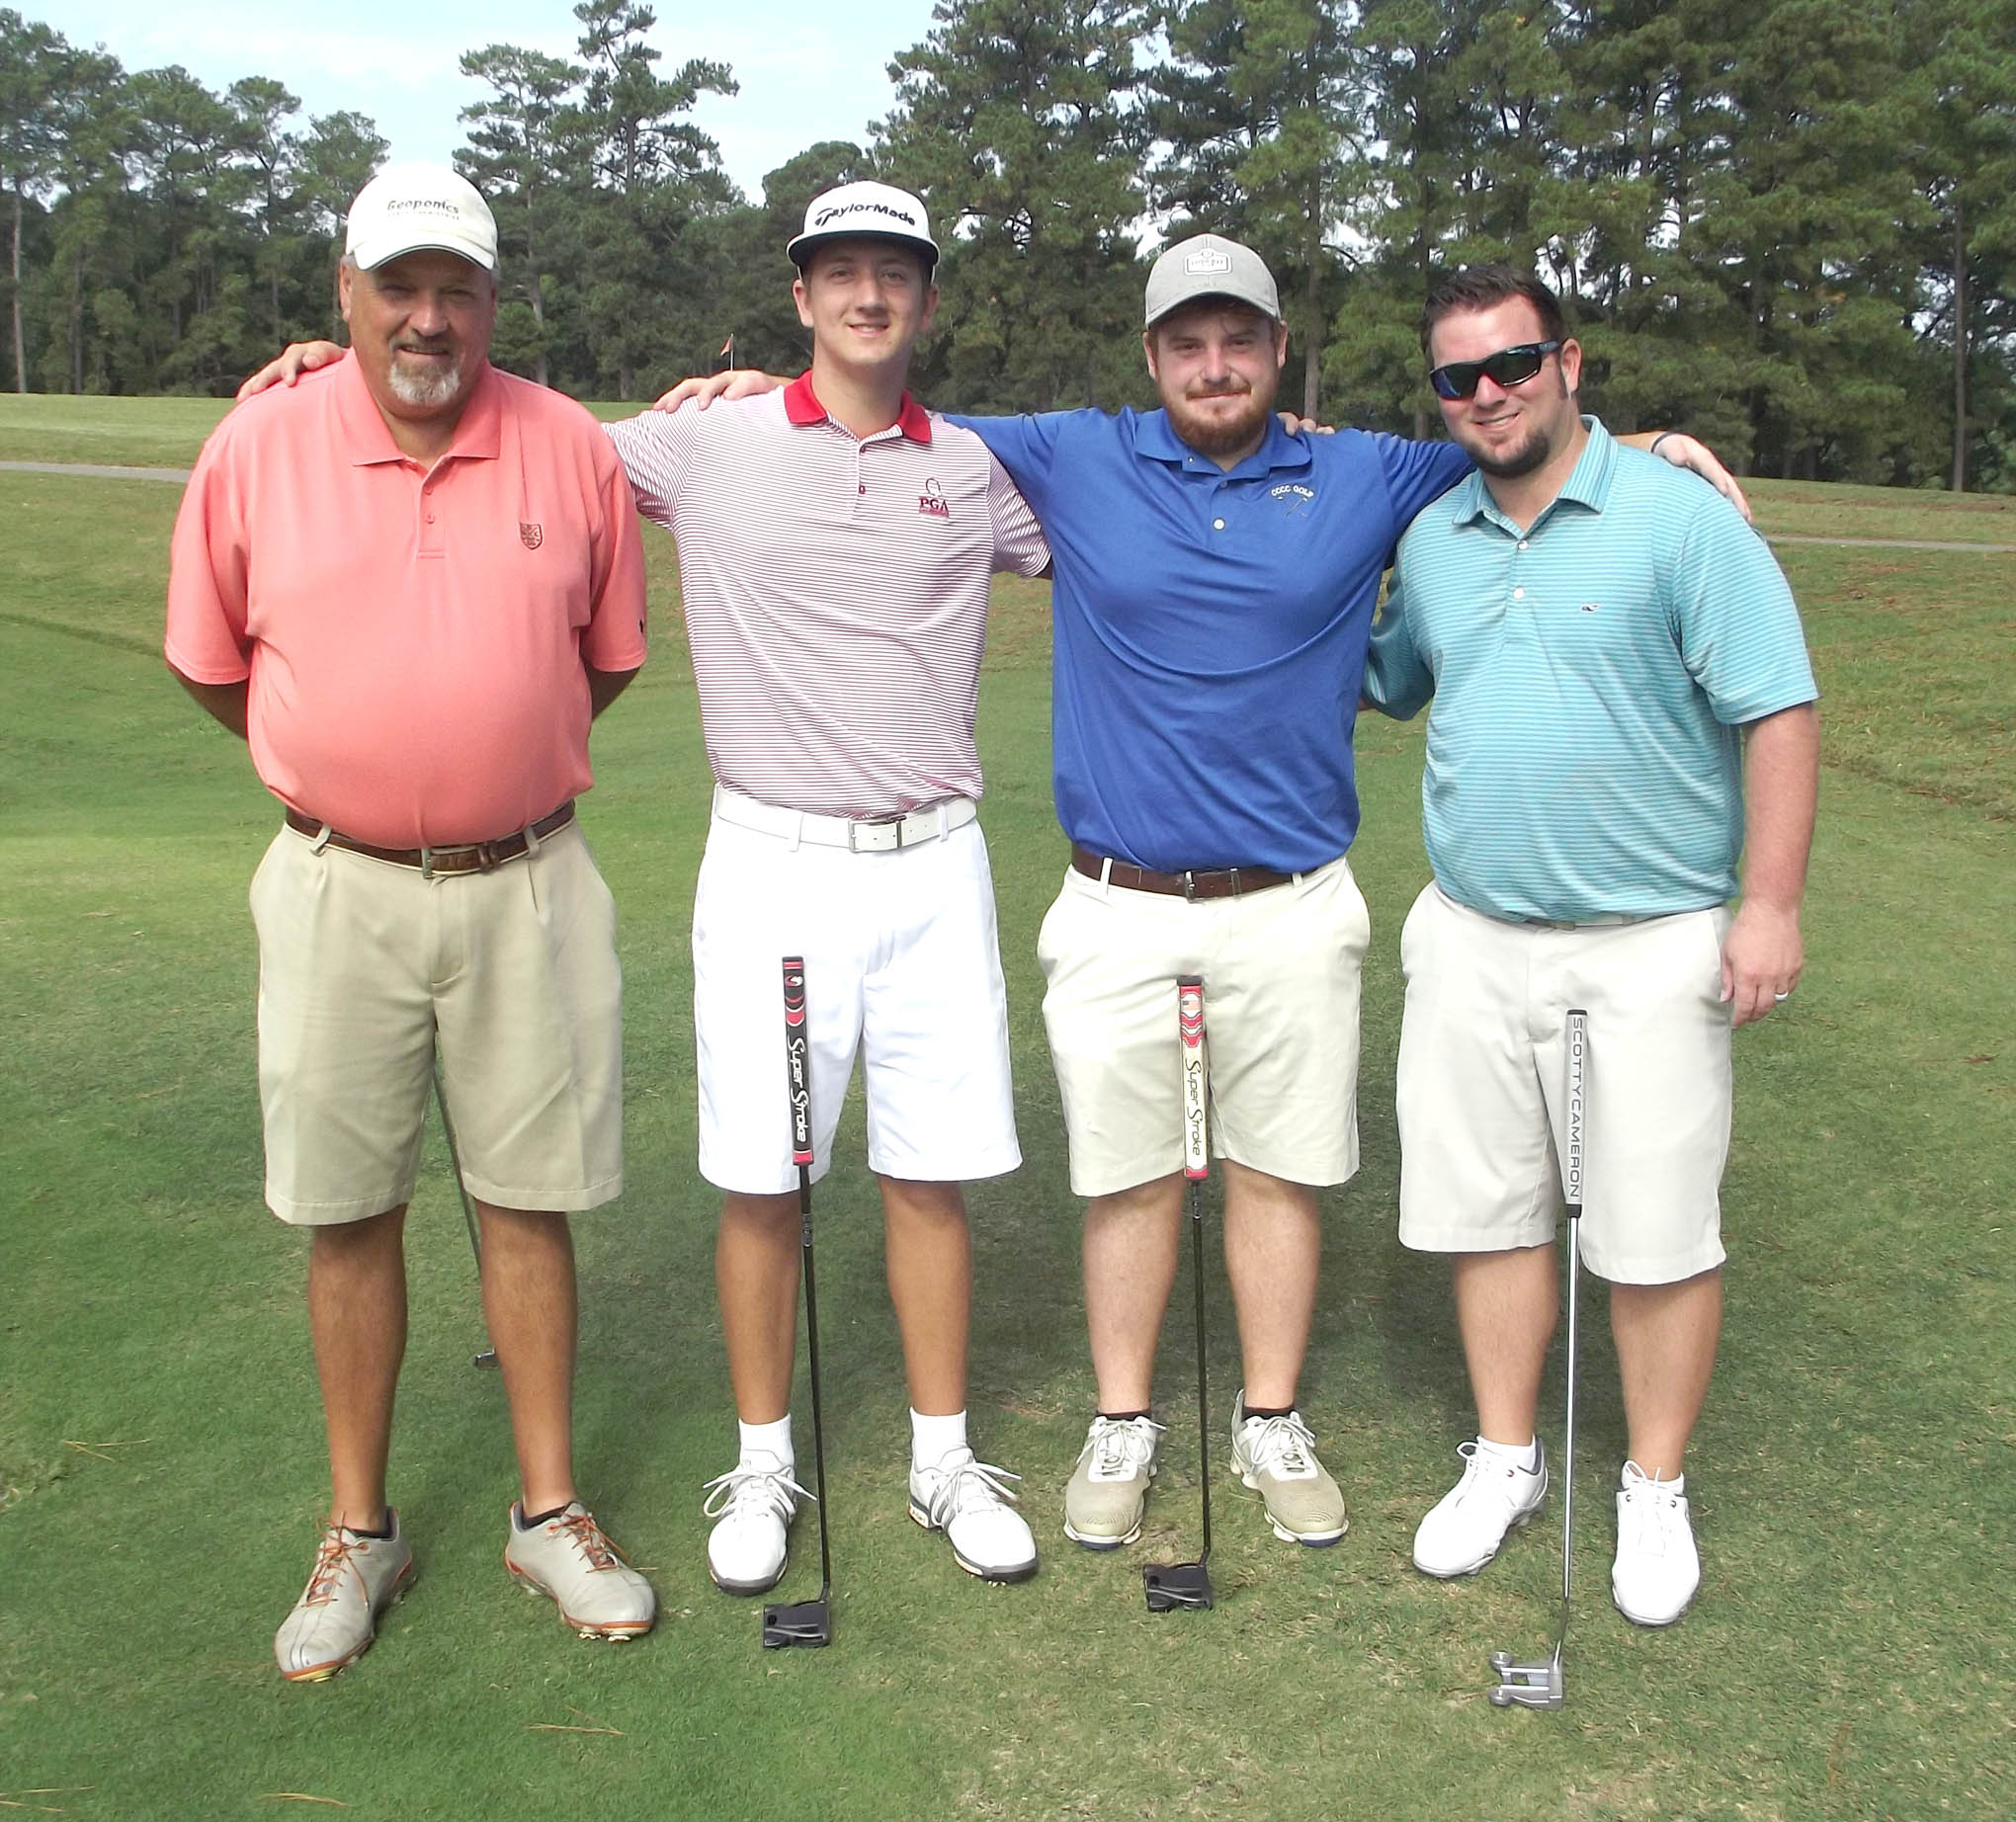 Click to enlarge,  The team of Brandon Honeycutt, Matthew Honeycutt, Chris Brown, and Keith Thomas won the first flight of the morning tournament of the CCCC Foundation Lee Golf Classic.